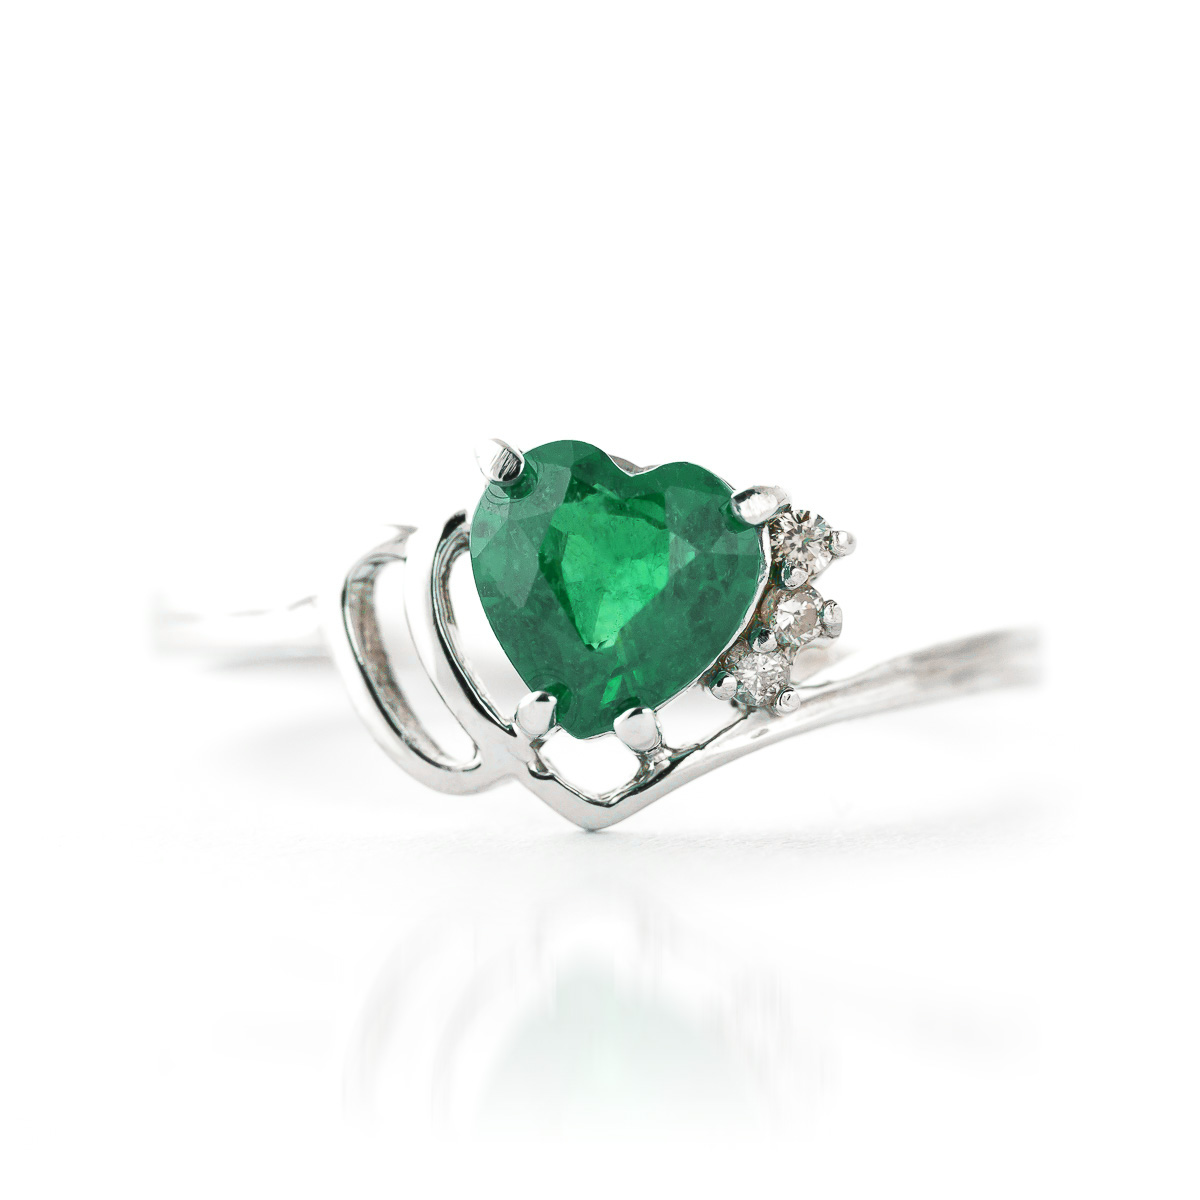 Emerald and Diamond Devotion Ring 1.0ct in 9ct White Gold